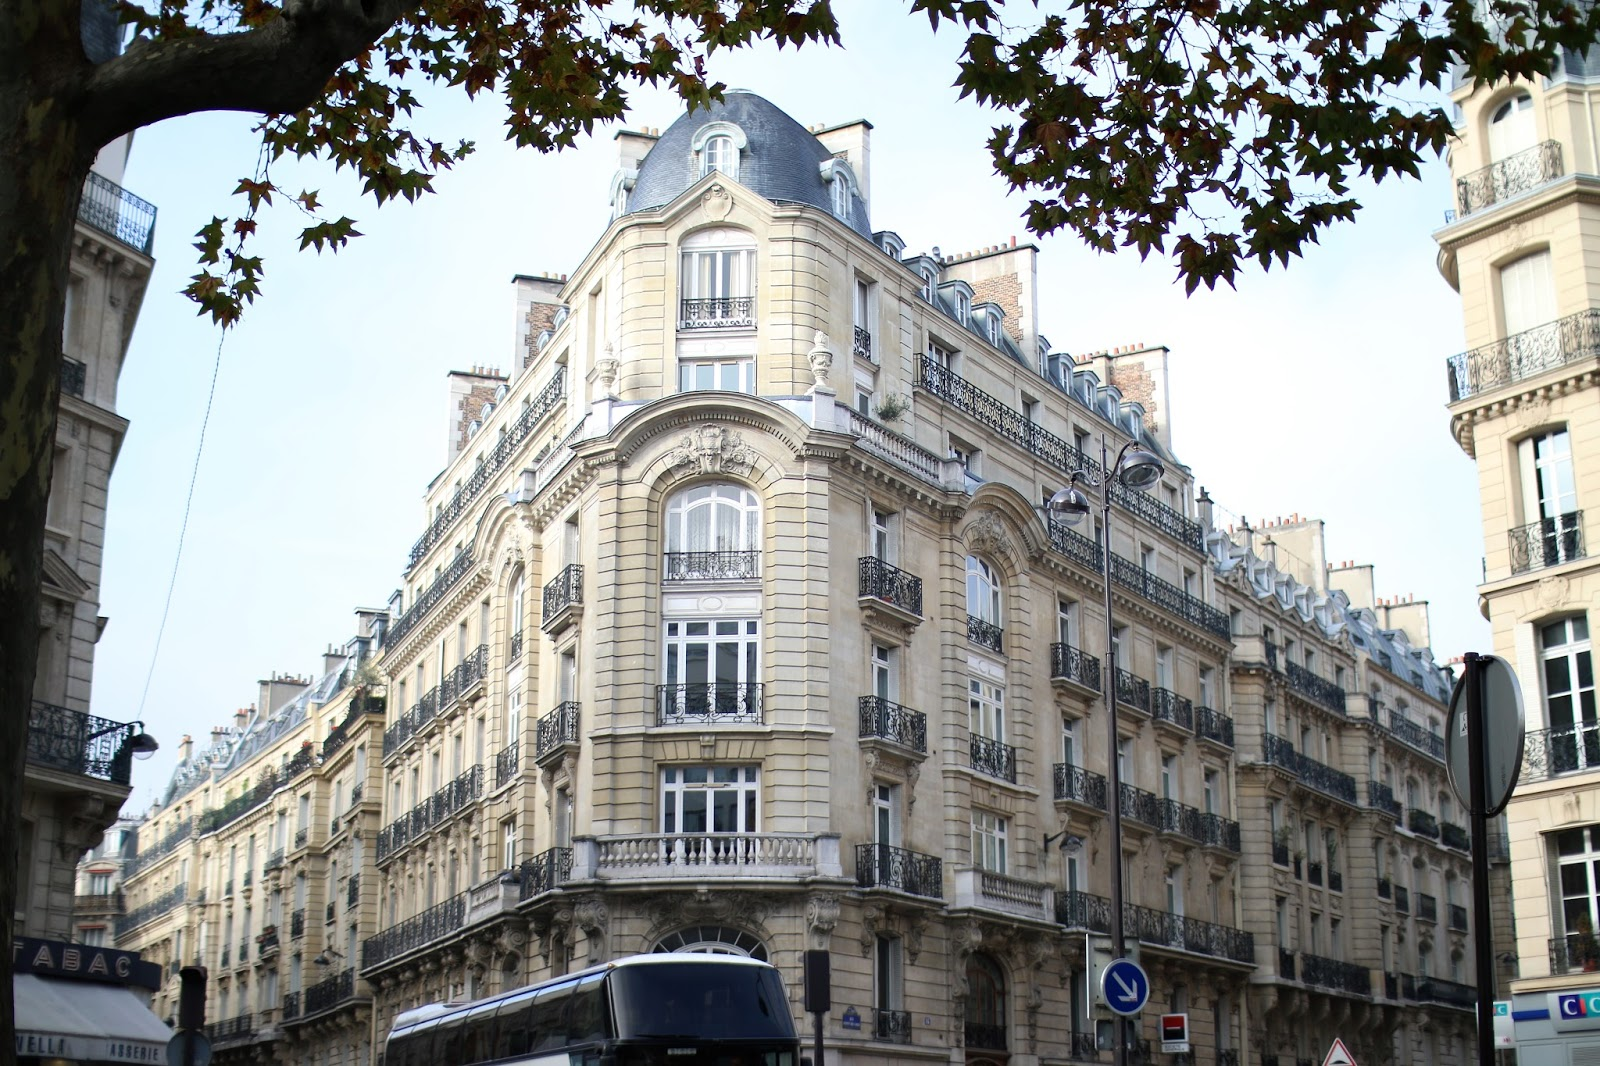 a beautiful neutral coloured building in paris with trees in the foreground